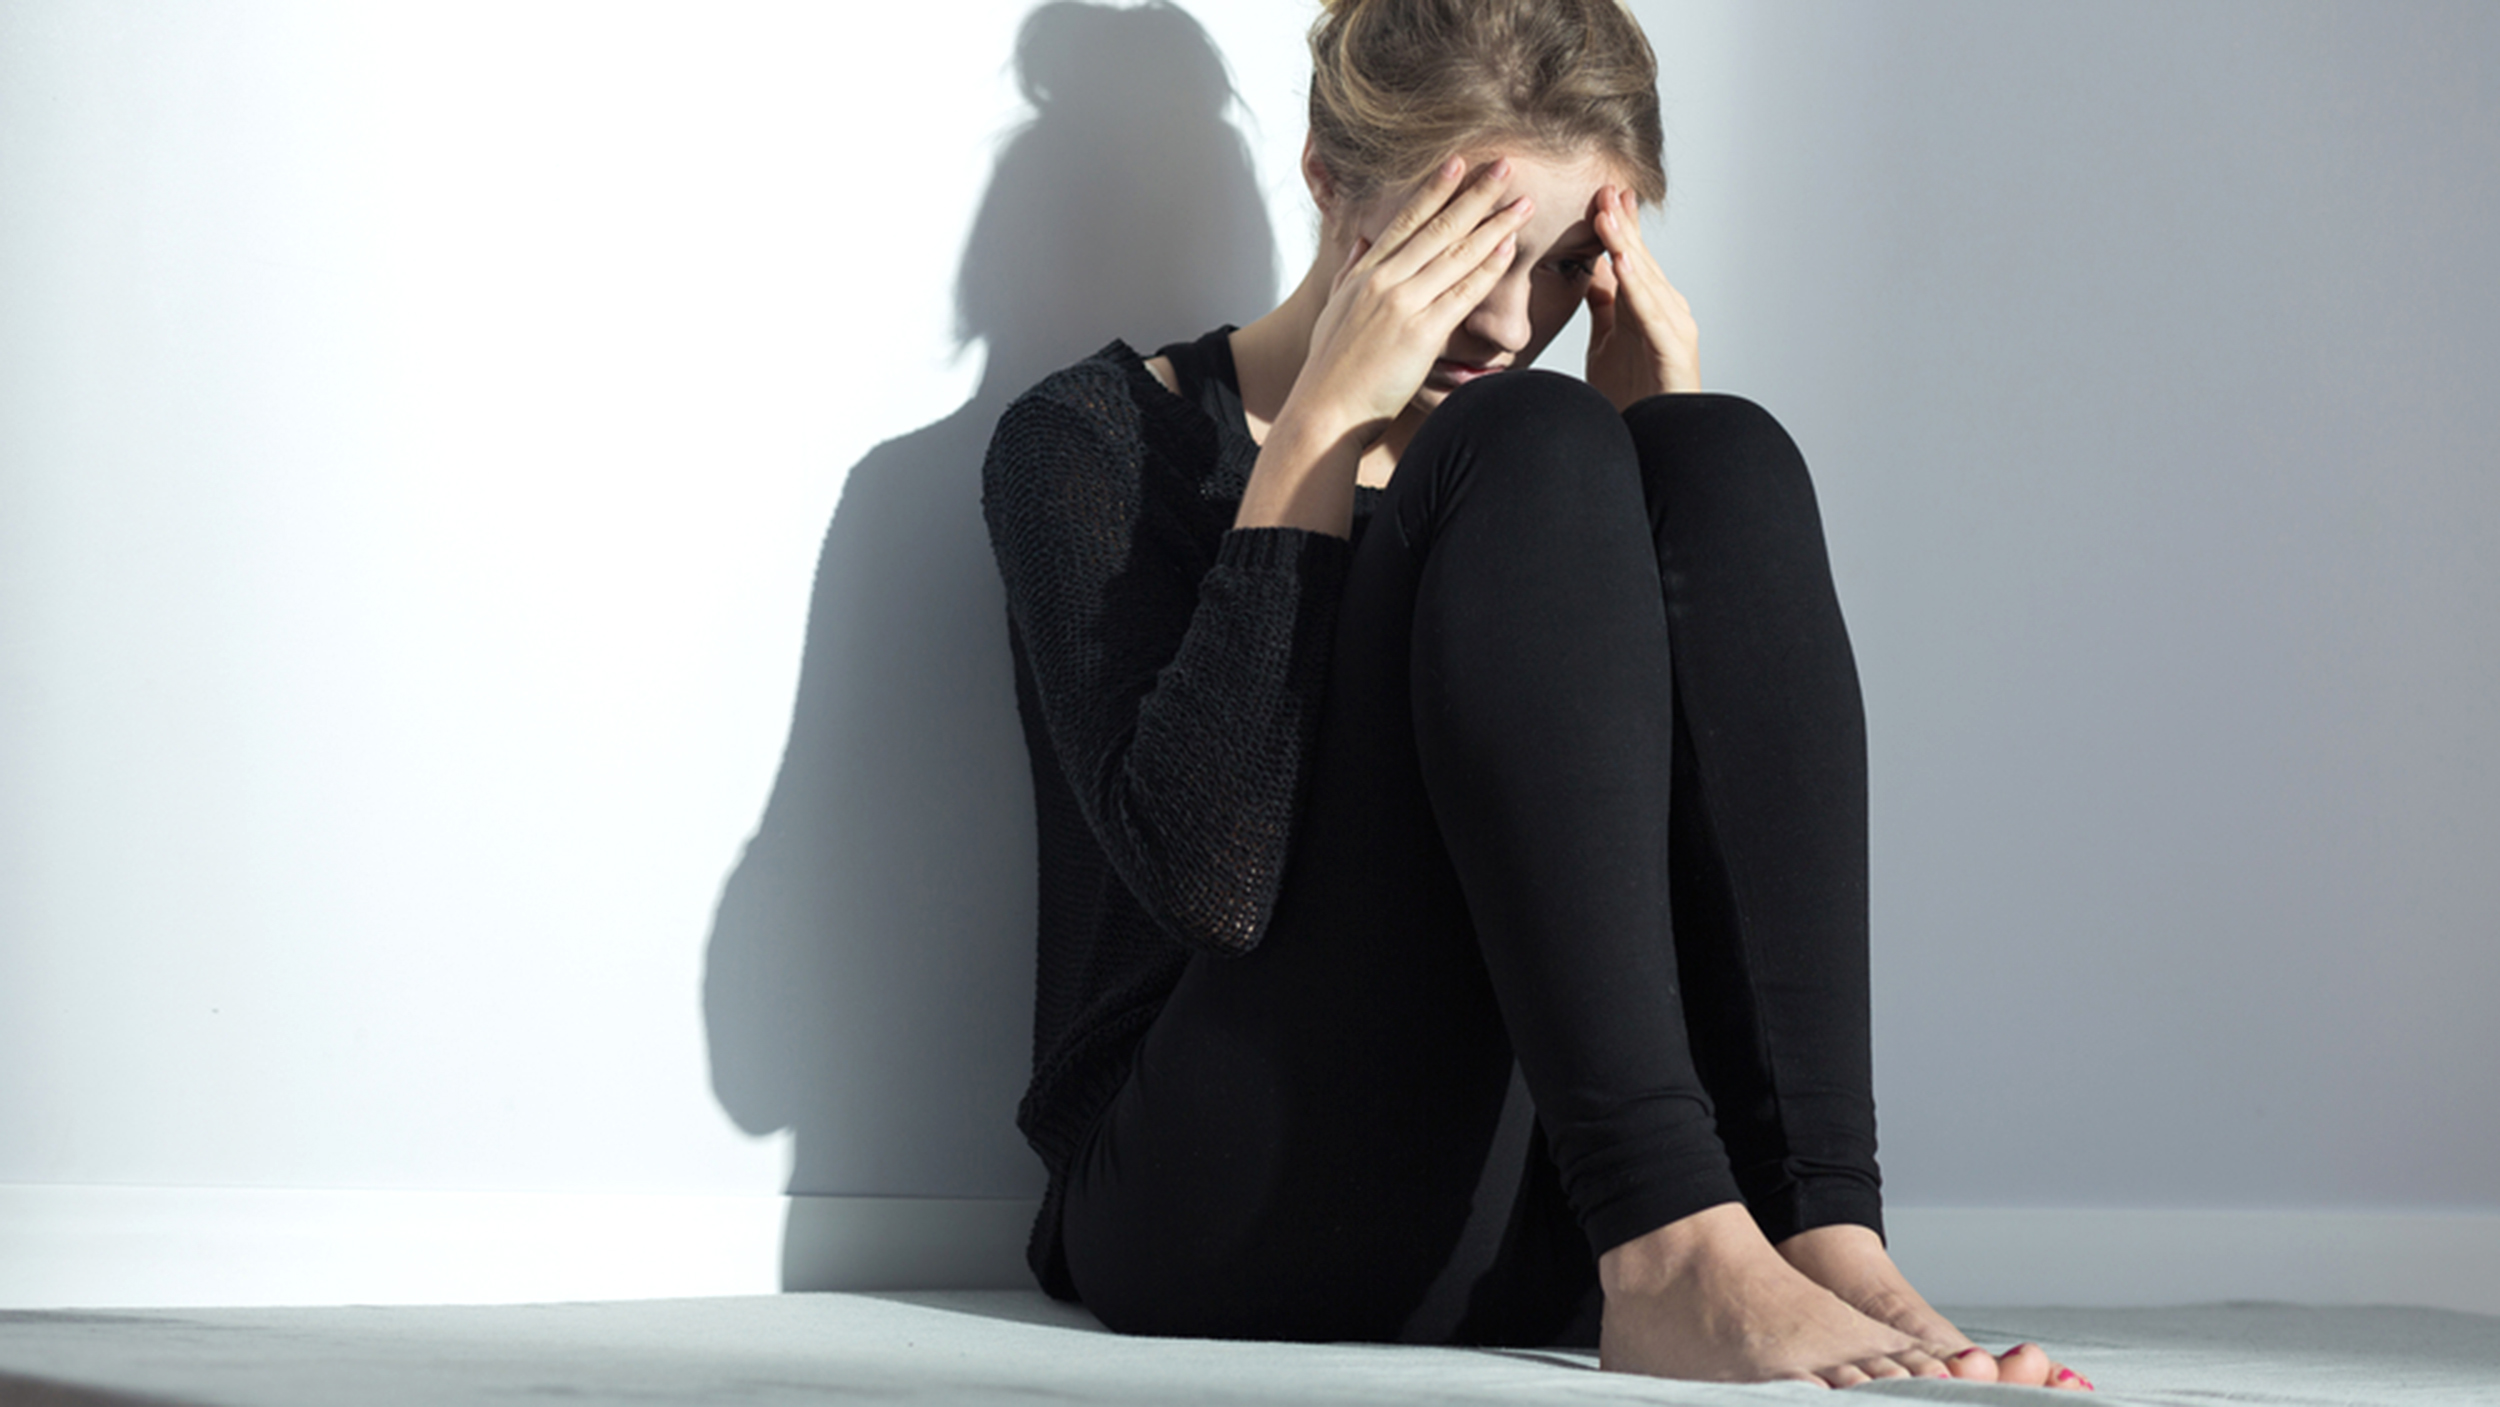 Depression signs you should never ignore - TODAY.com